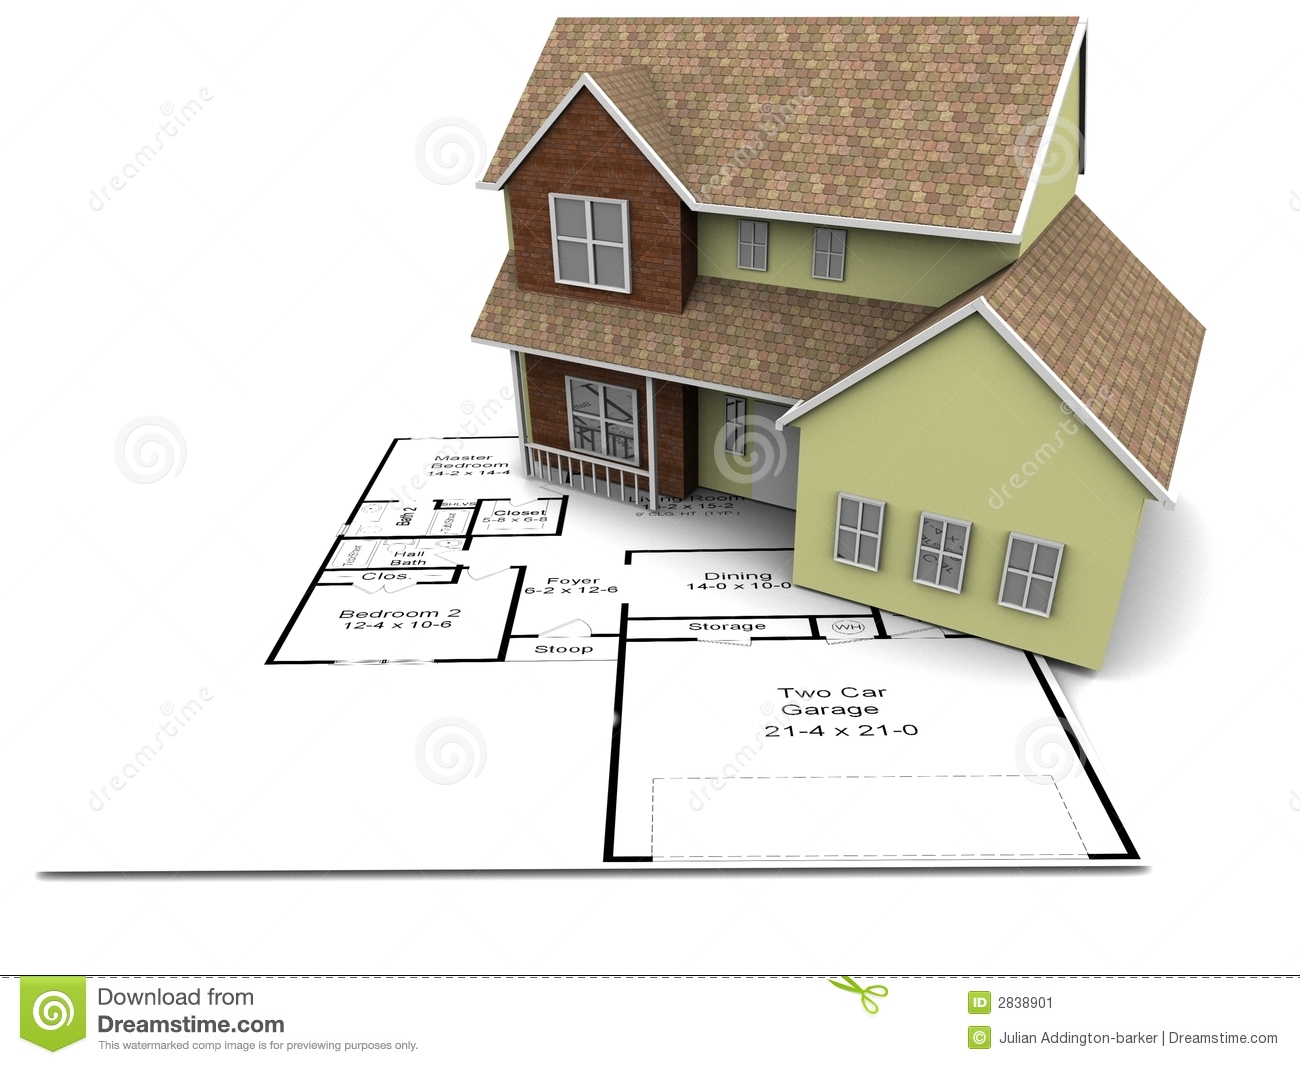 New house plans stock image image 2838901 for New house design photos